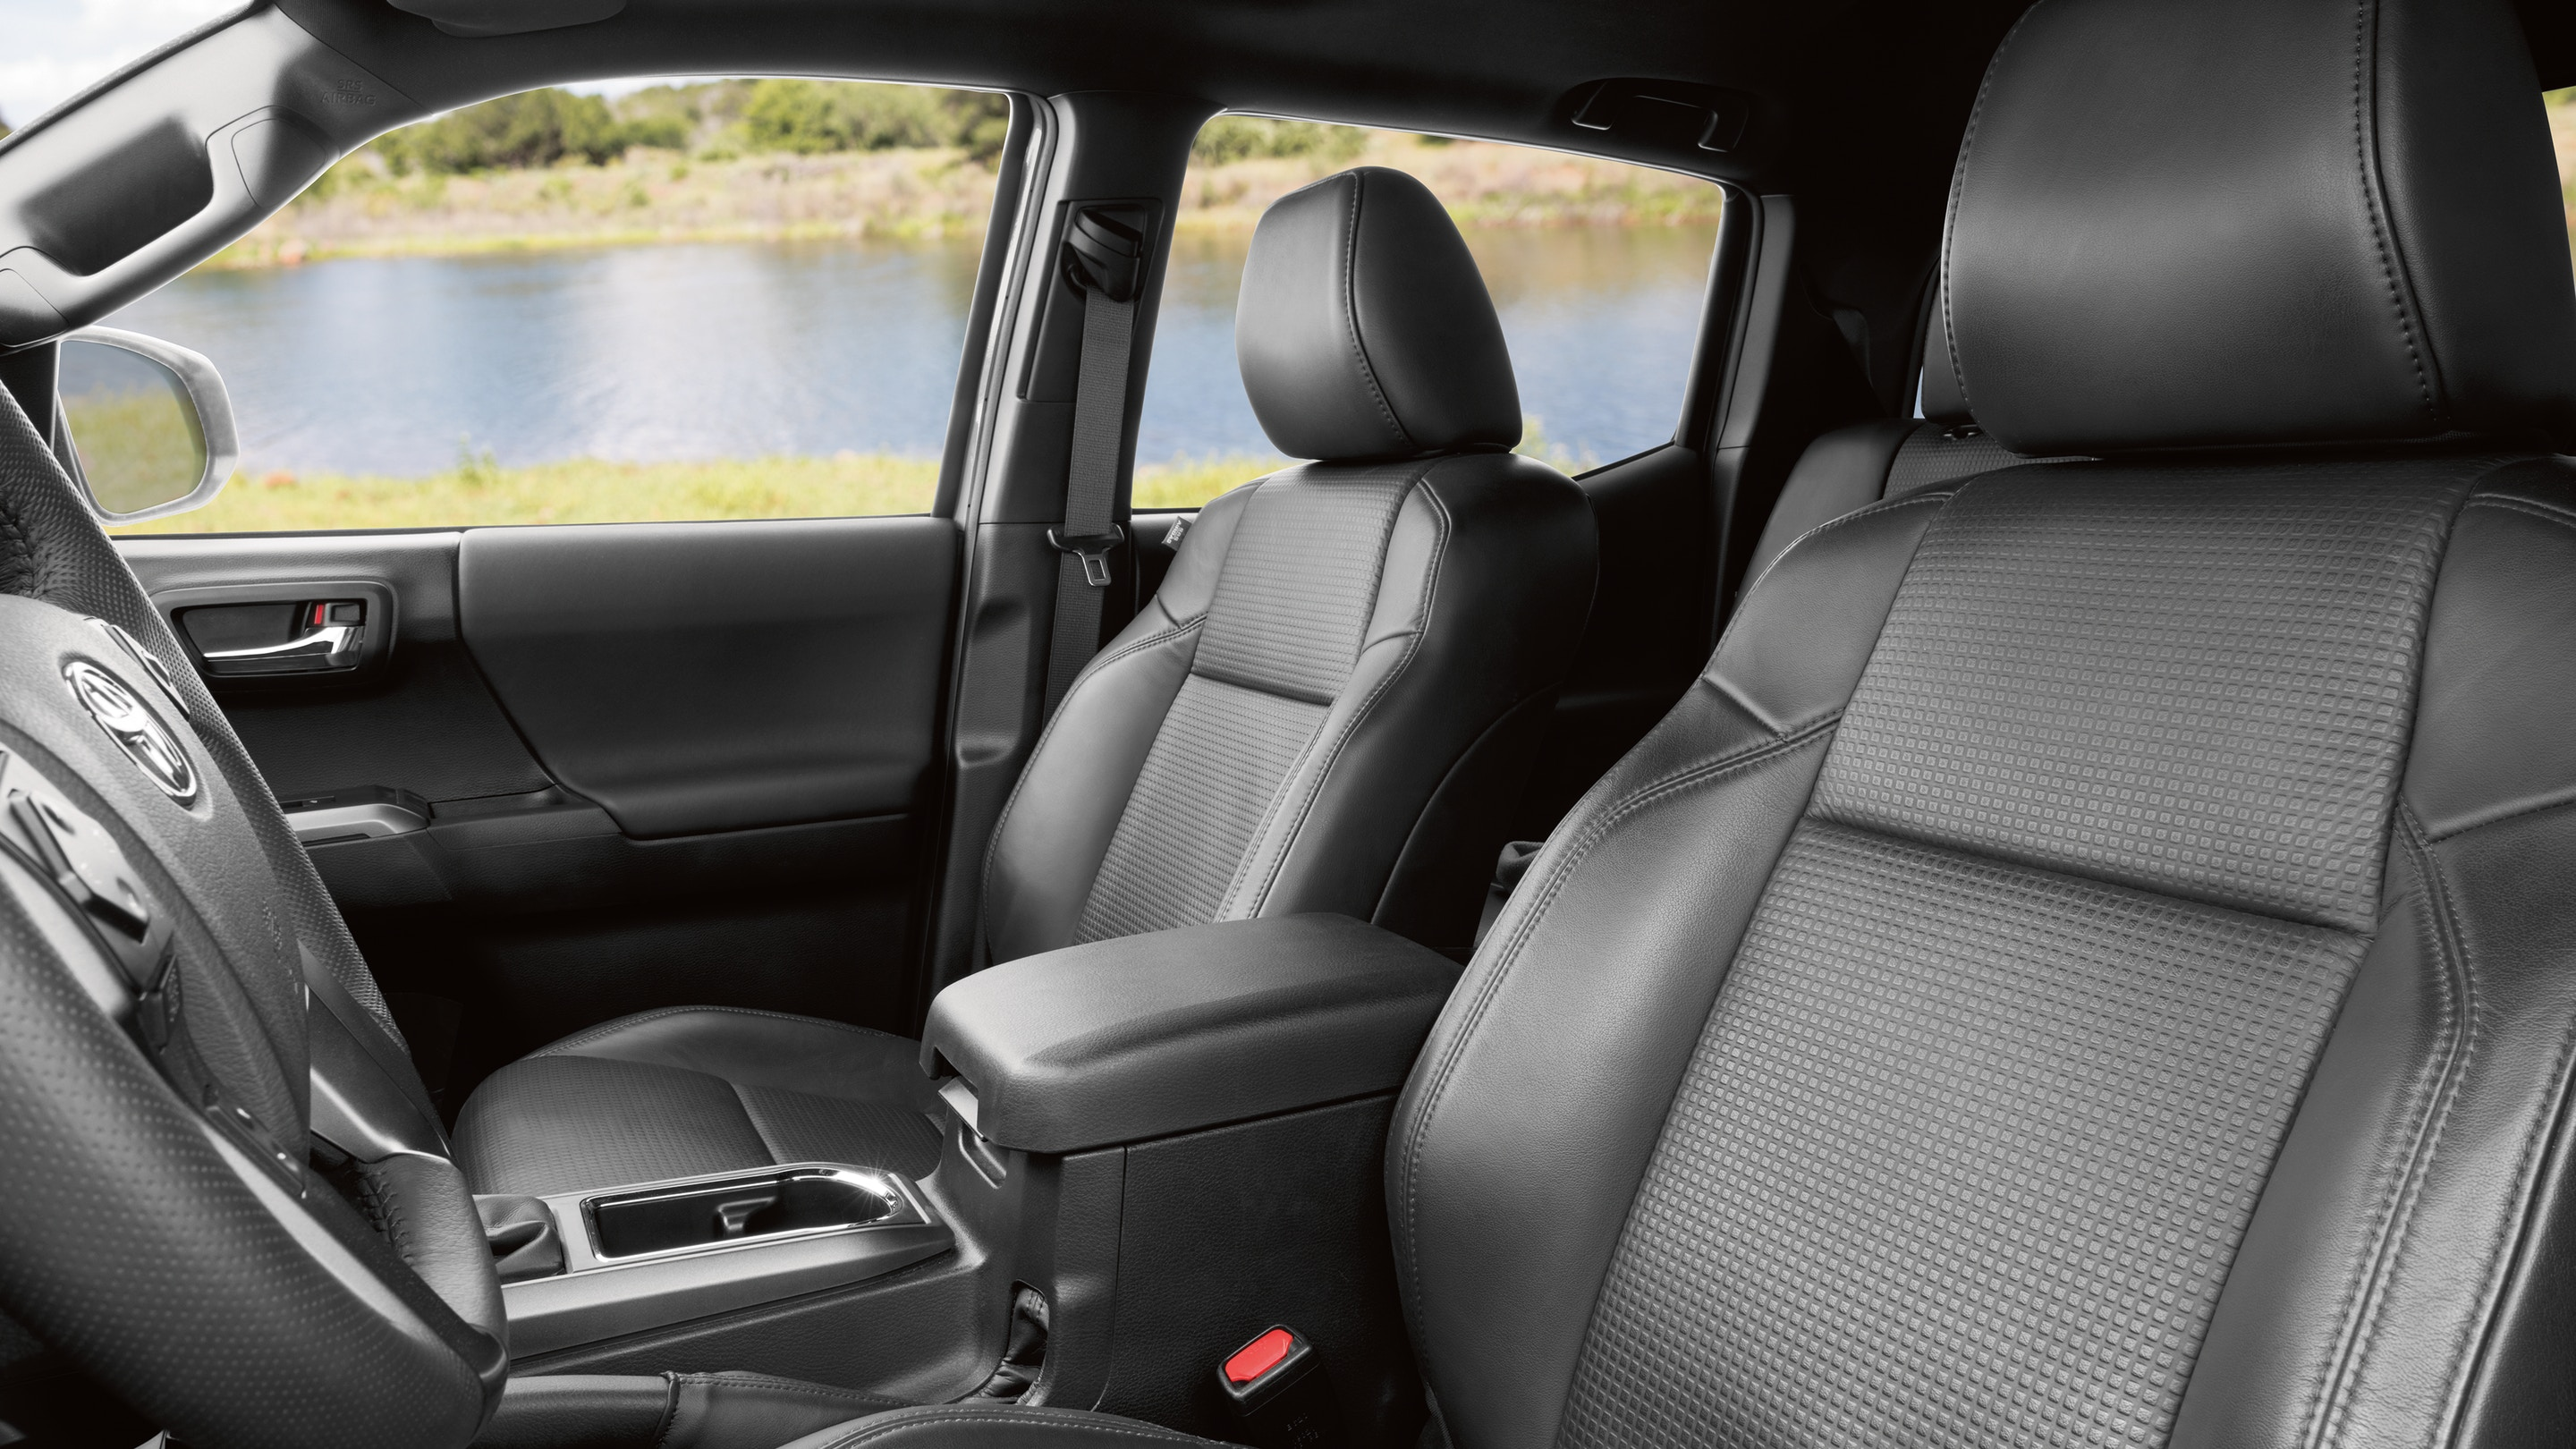 Cozy Front Seats of the 2020 Toyota Tacoma